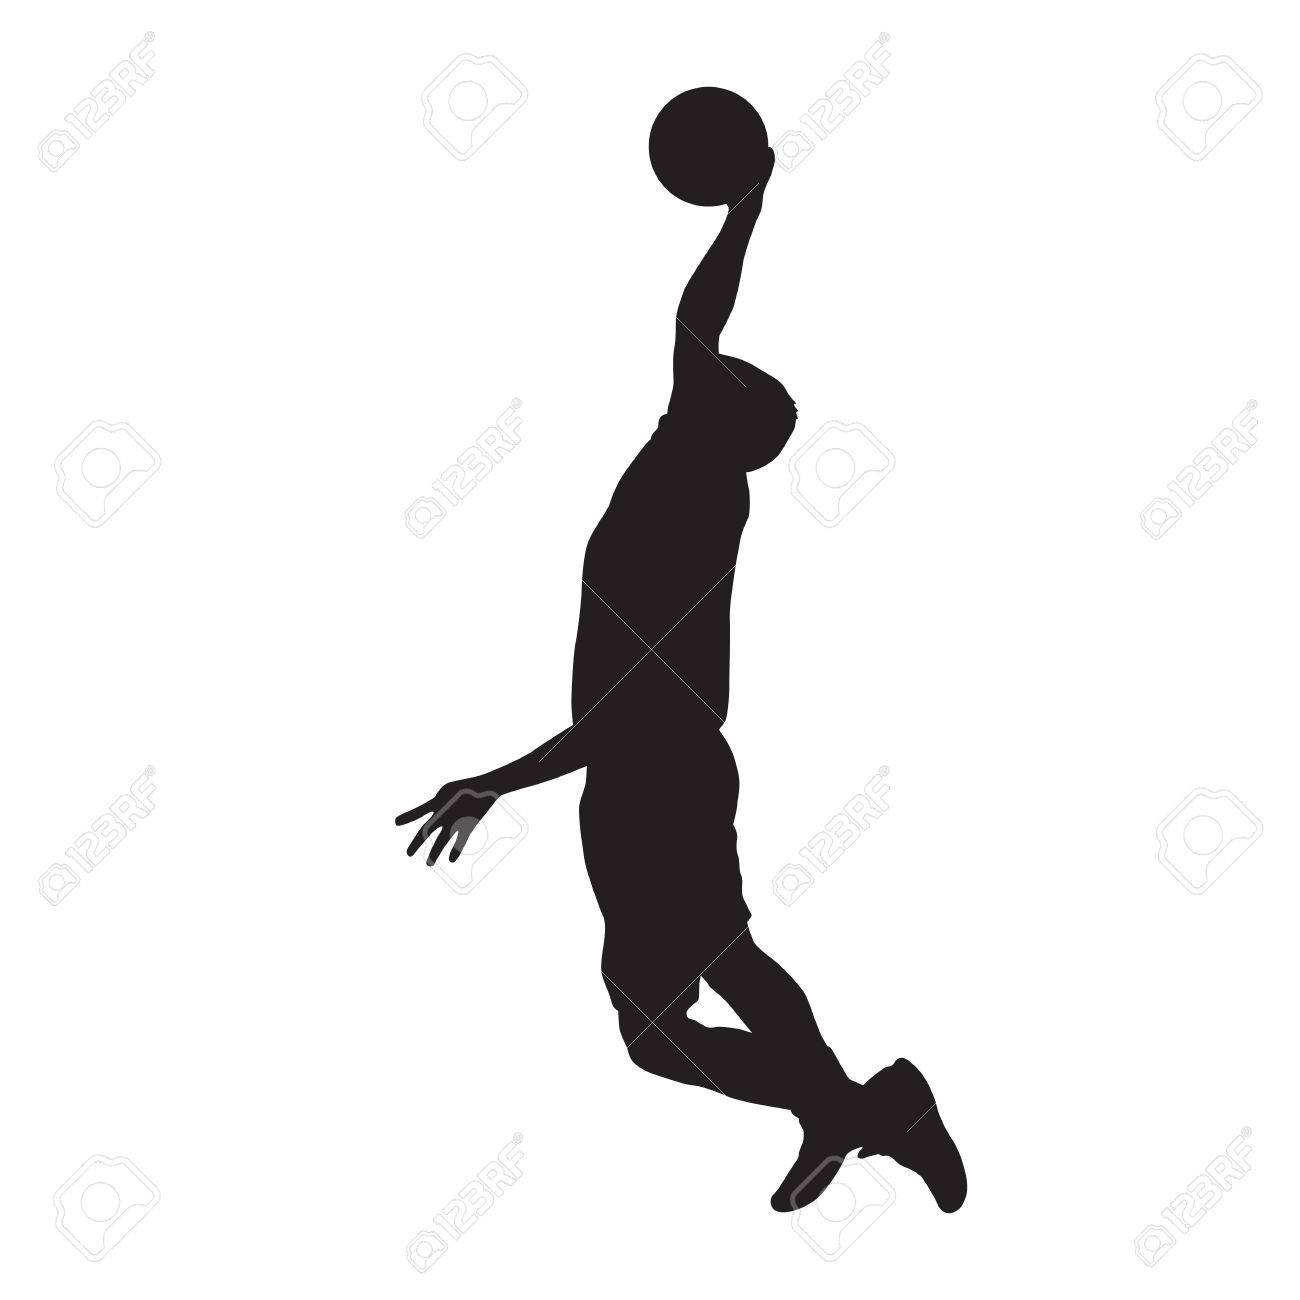 Basketball player dunking, isolated vector silhouette.